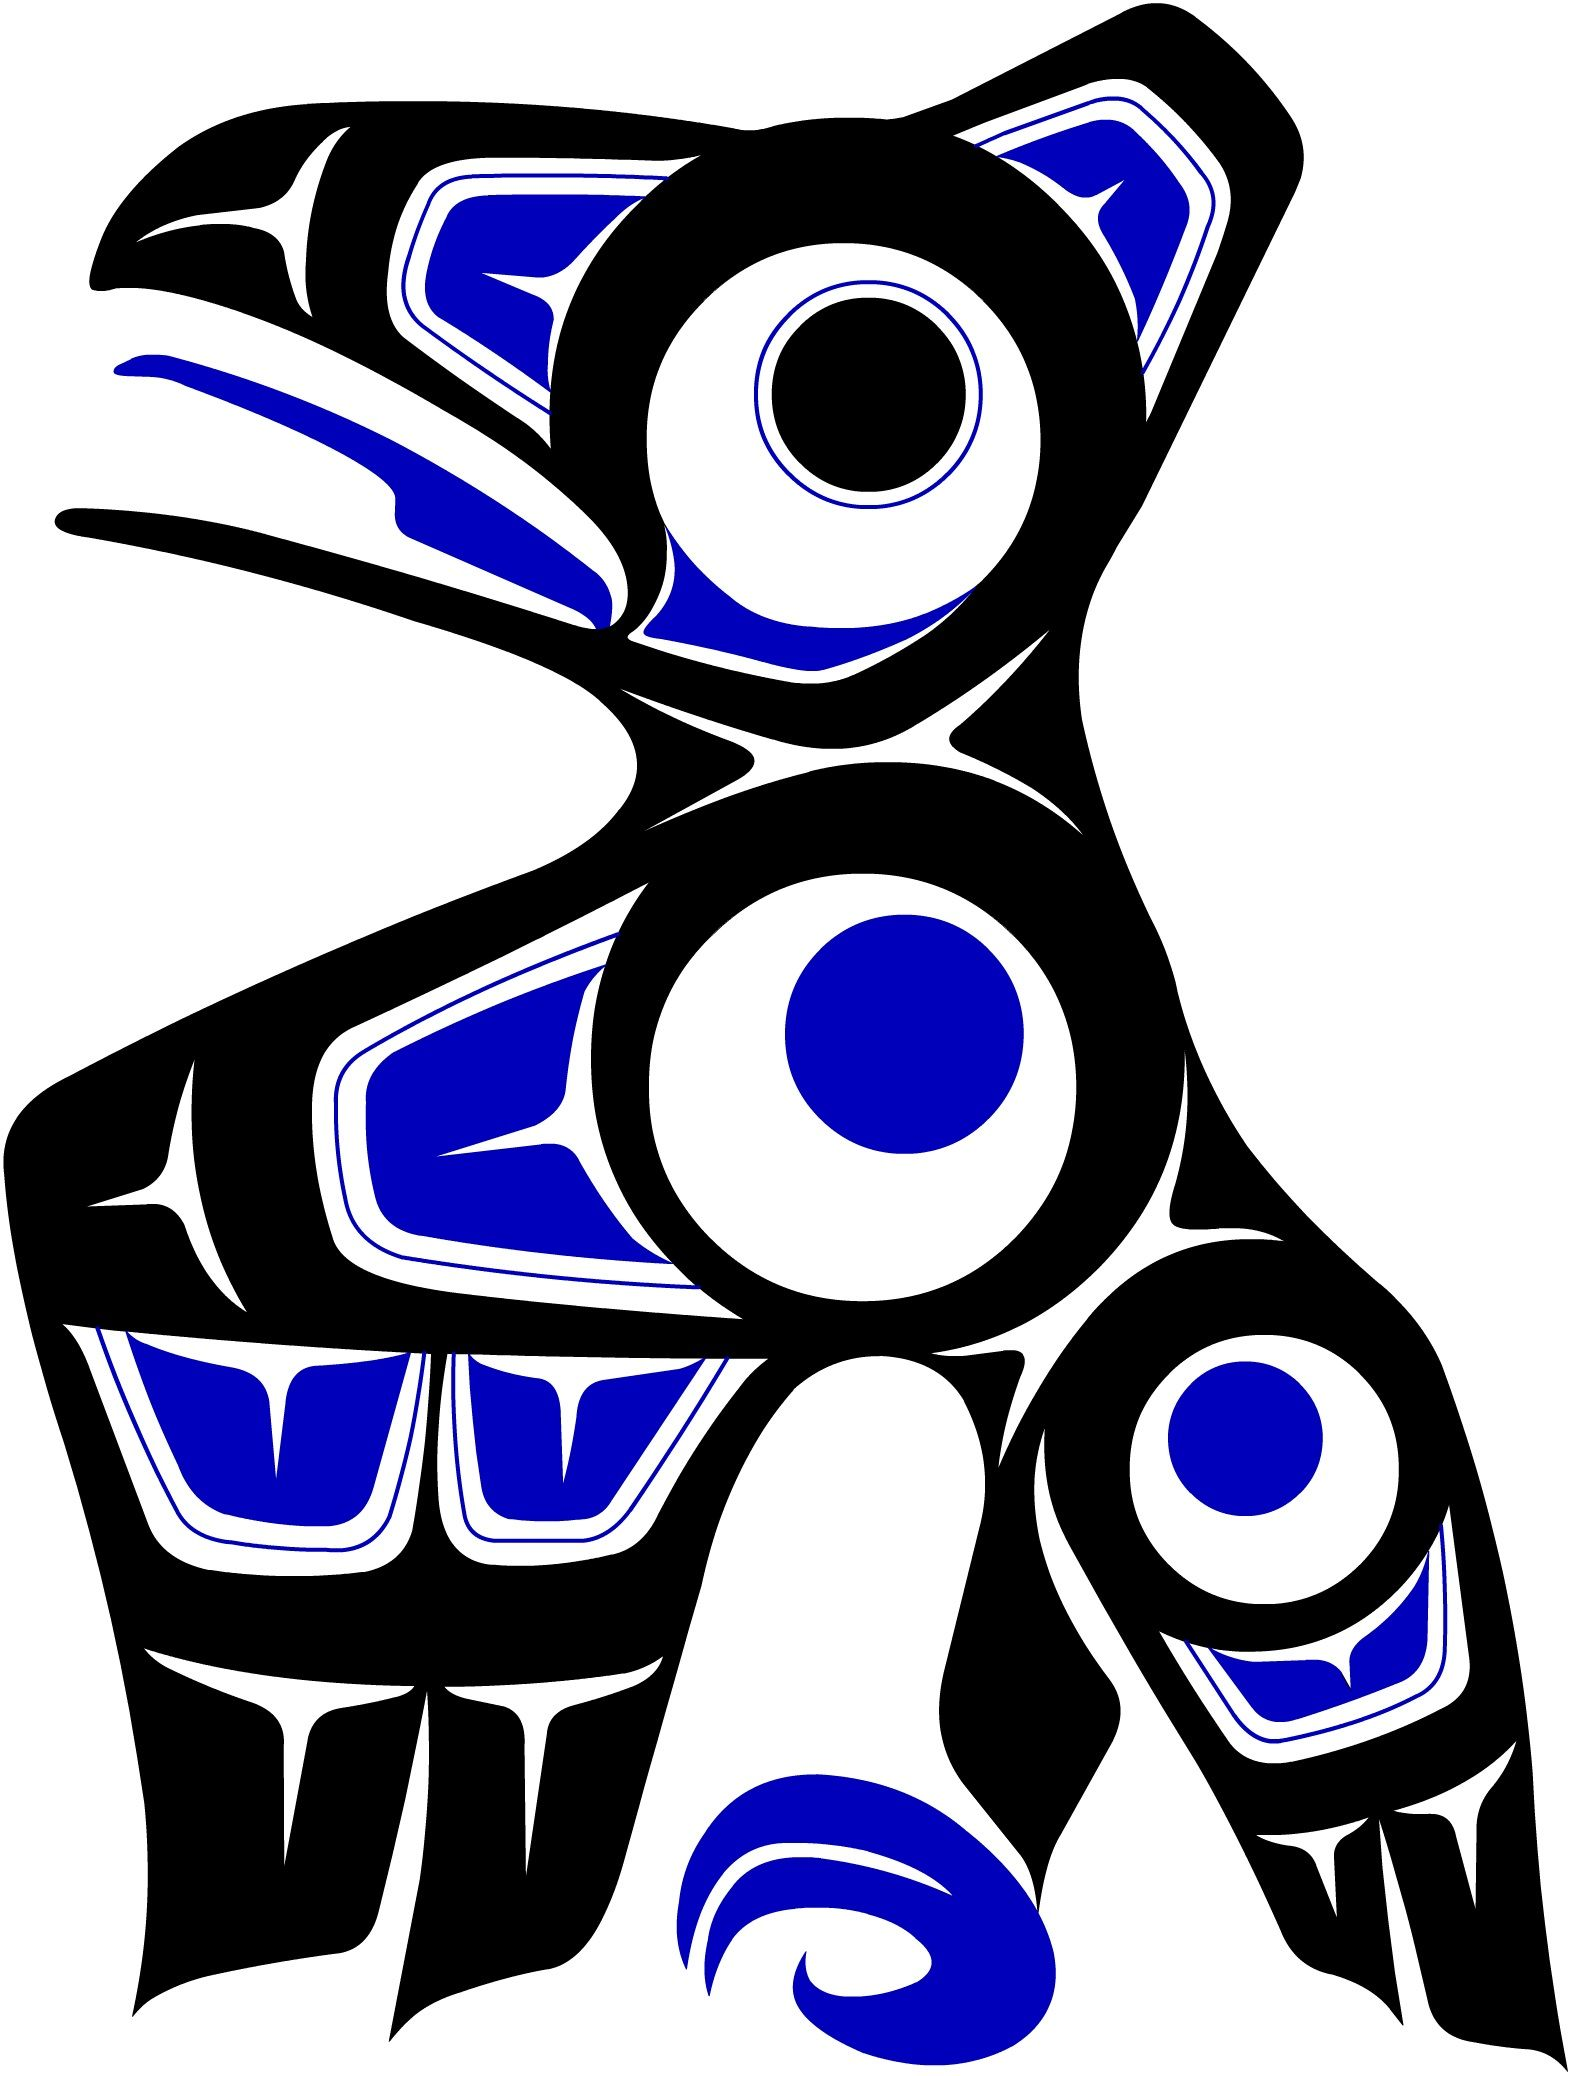 Eric parnell indian art from the edge crow art art